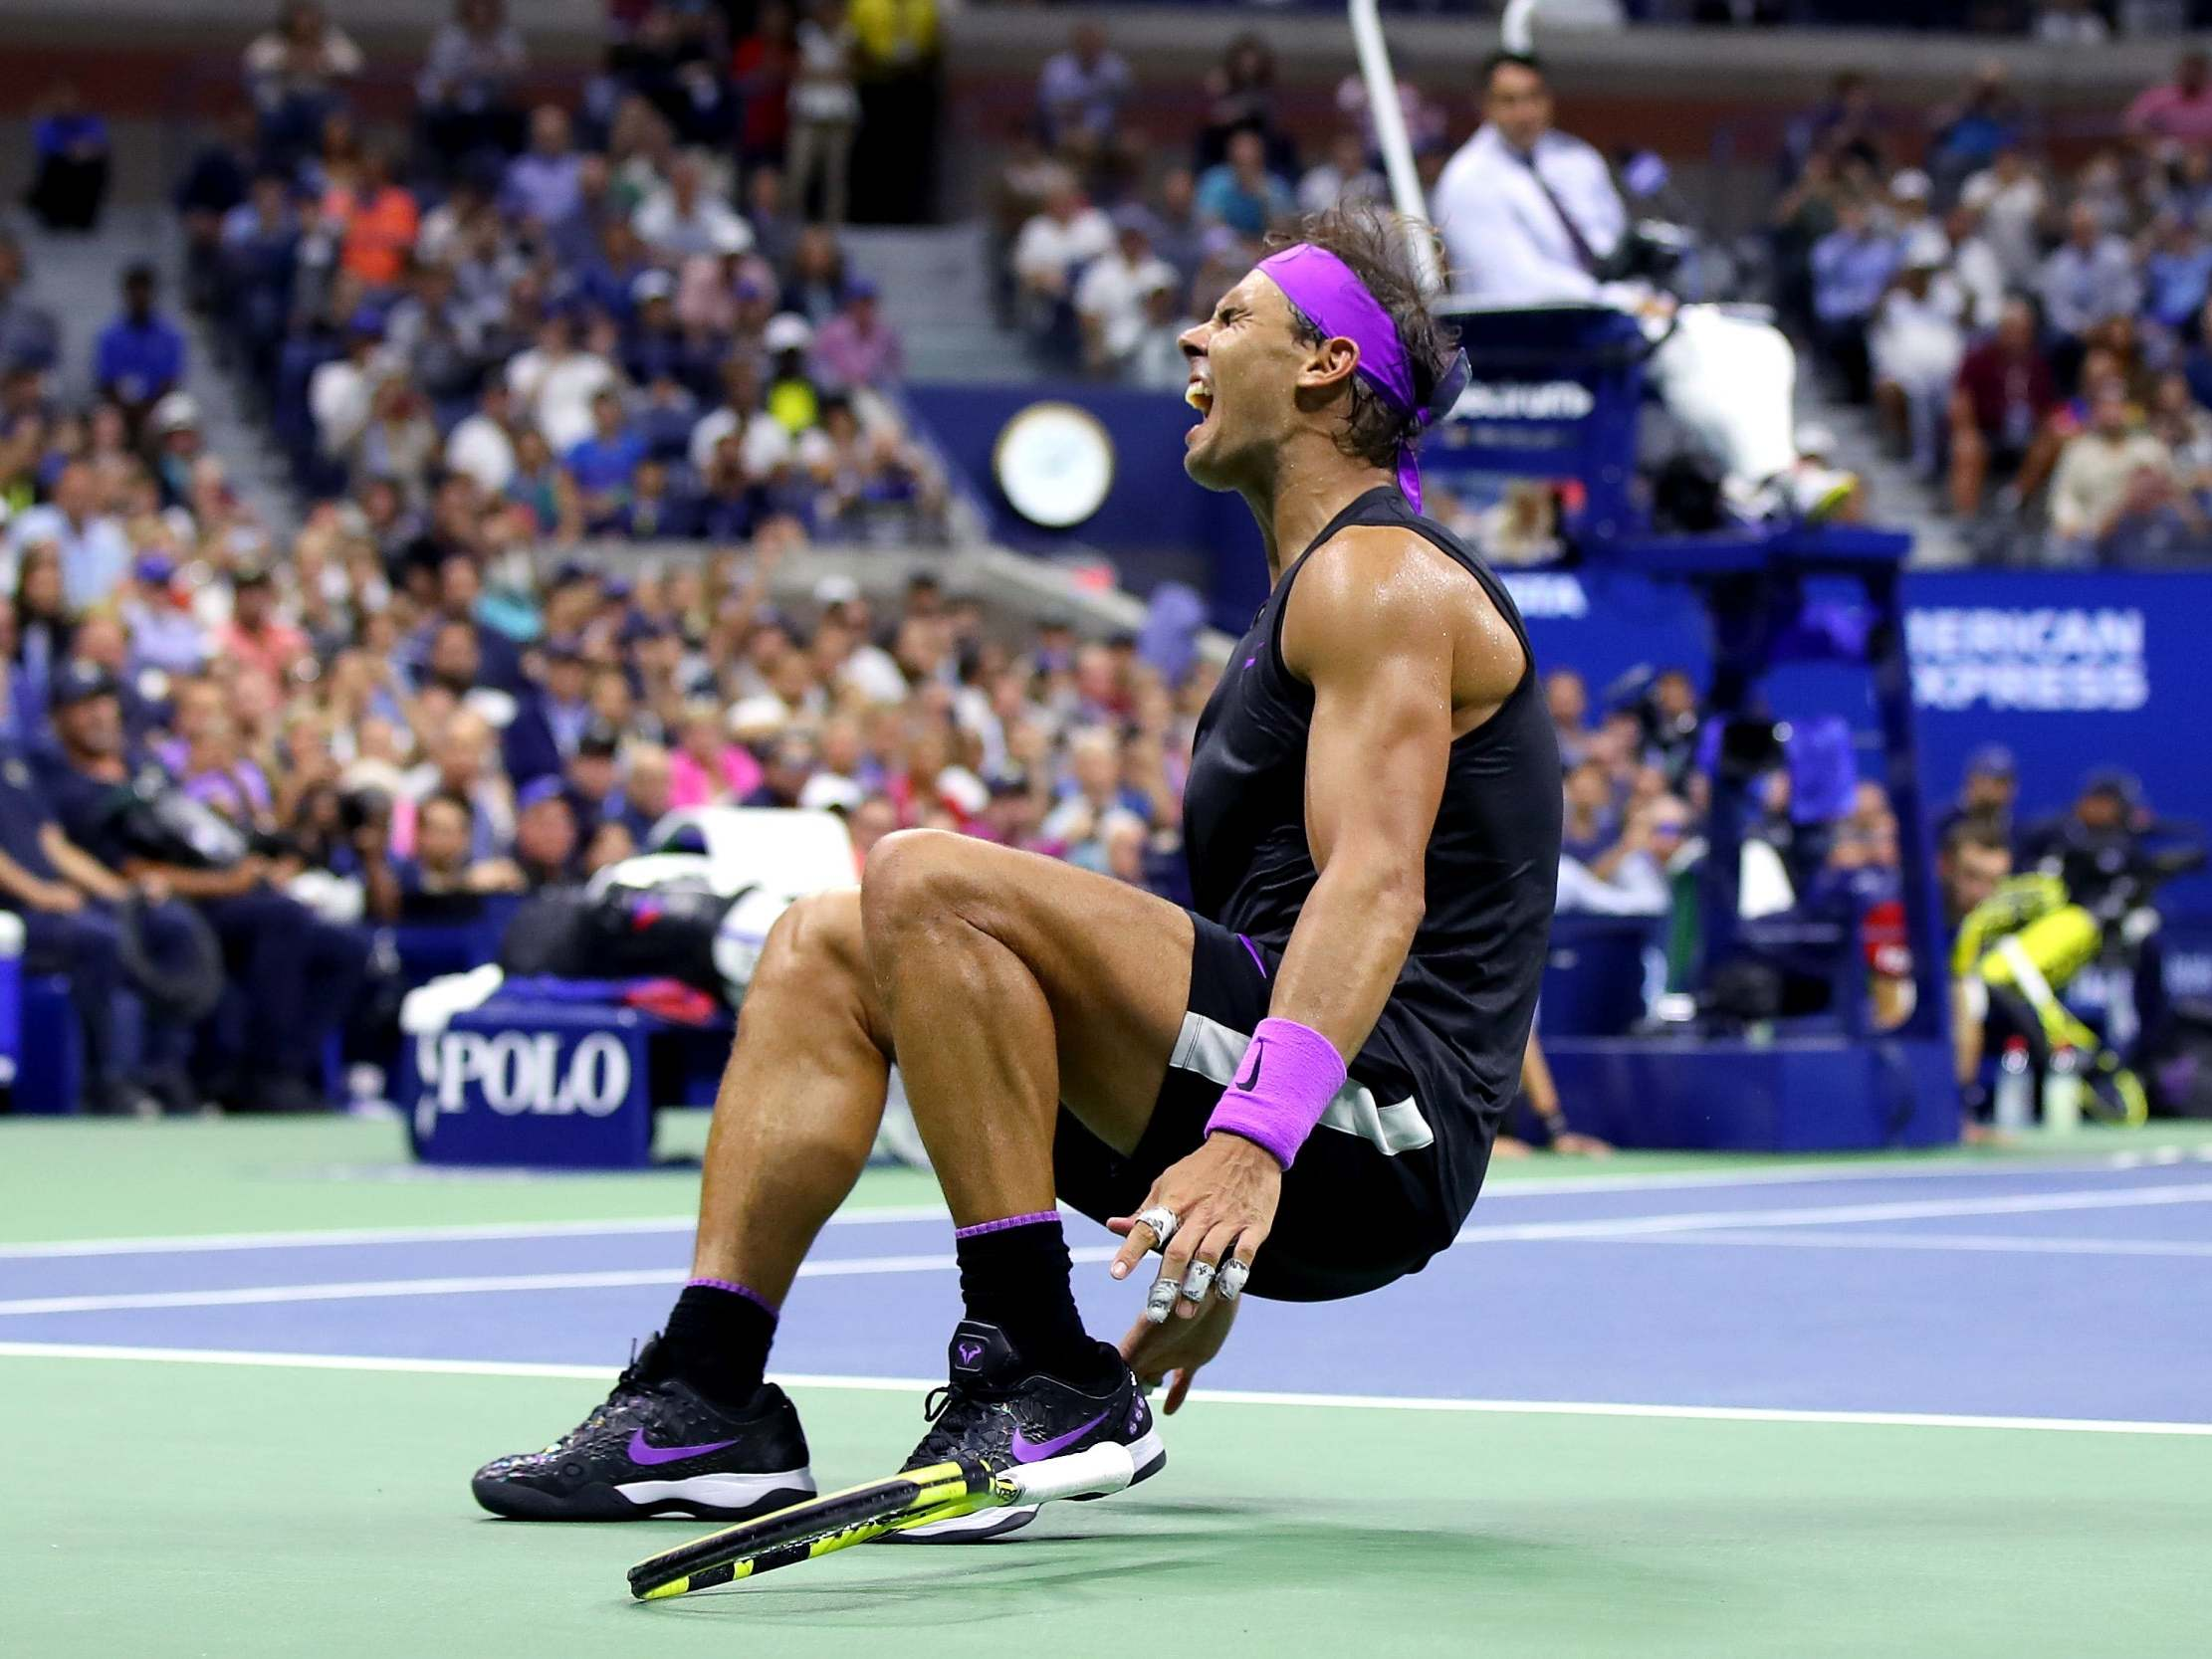 Us Open Final 2019 Rafael Nadal Not Motivated By Roger Federer S Grand Slam Record The Independent The Independent